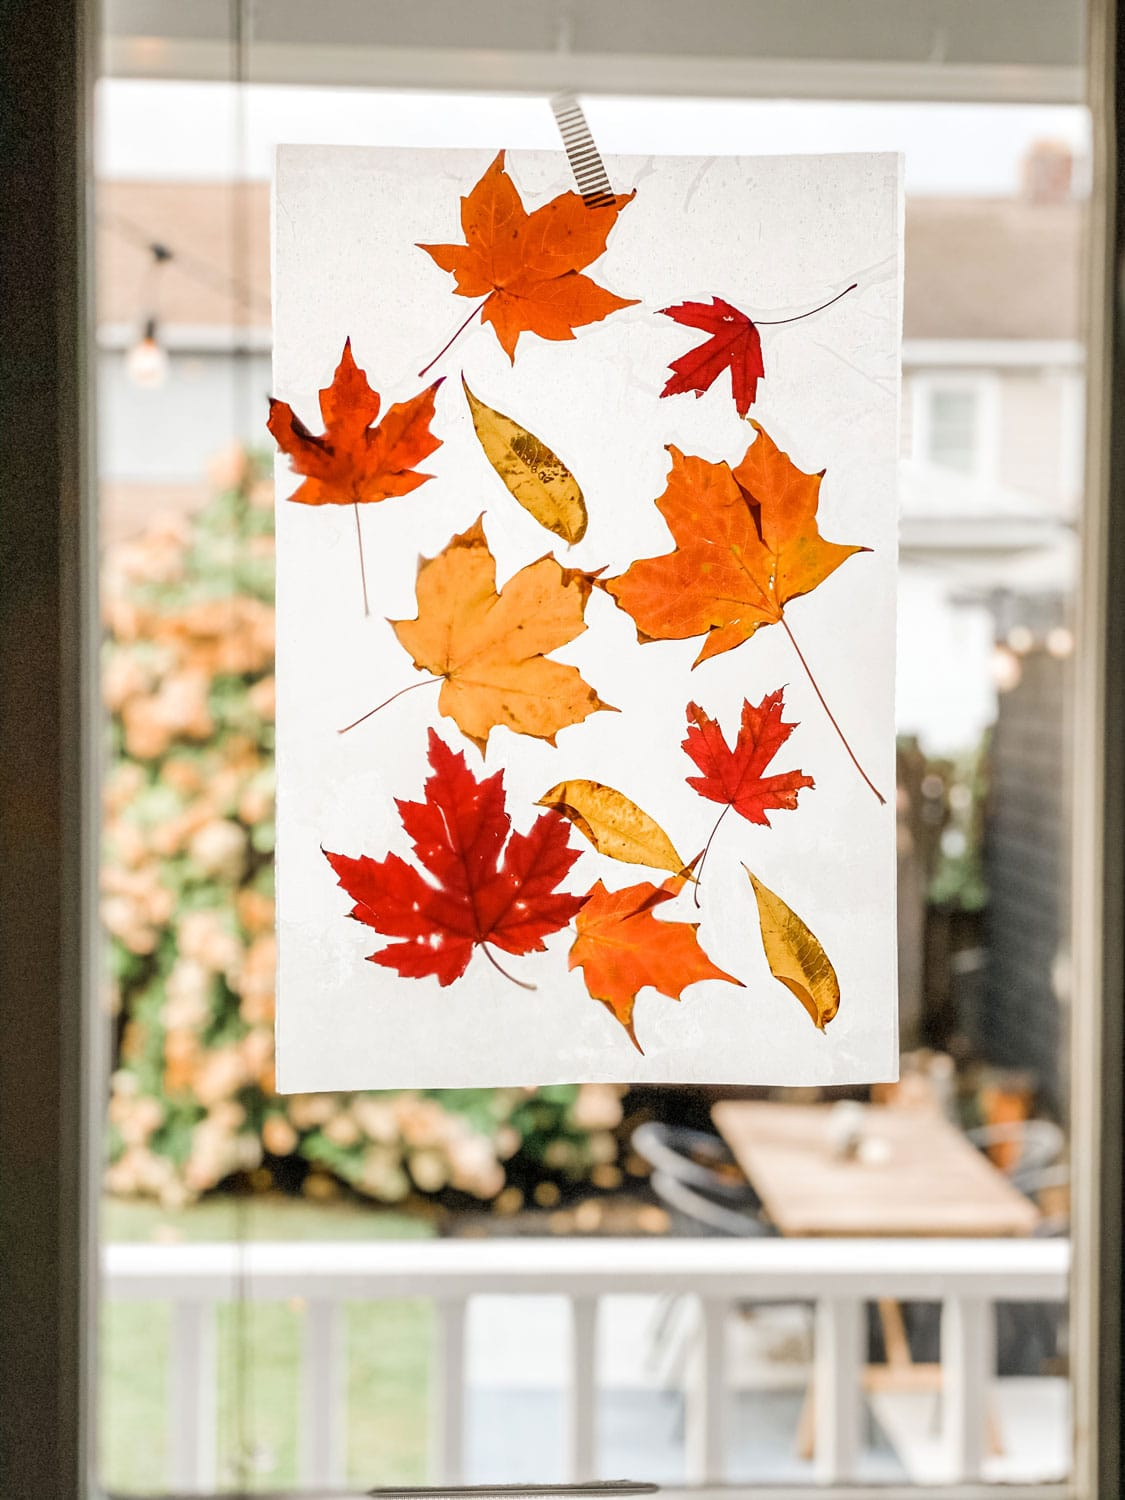 wax paper leaves on glass door